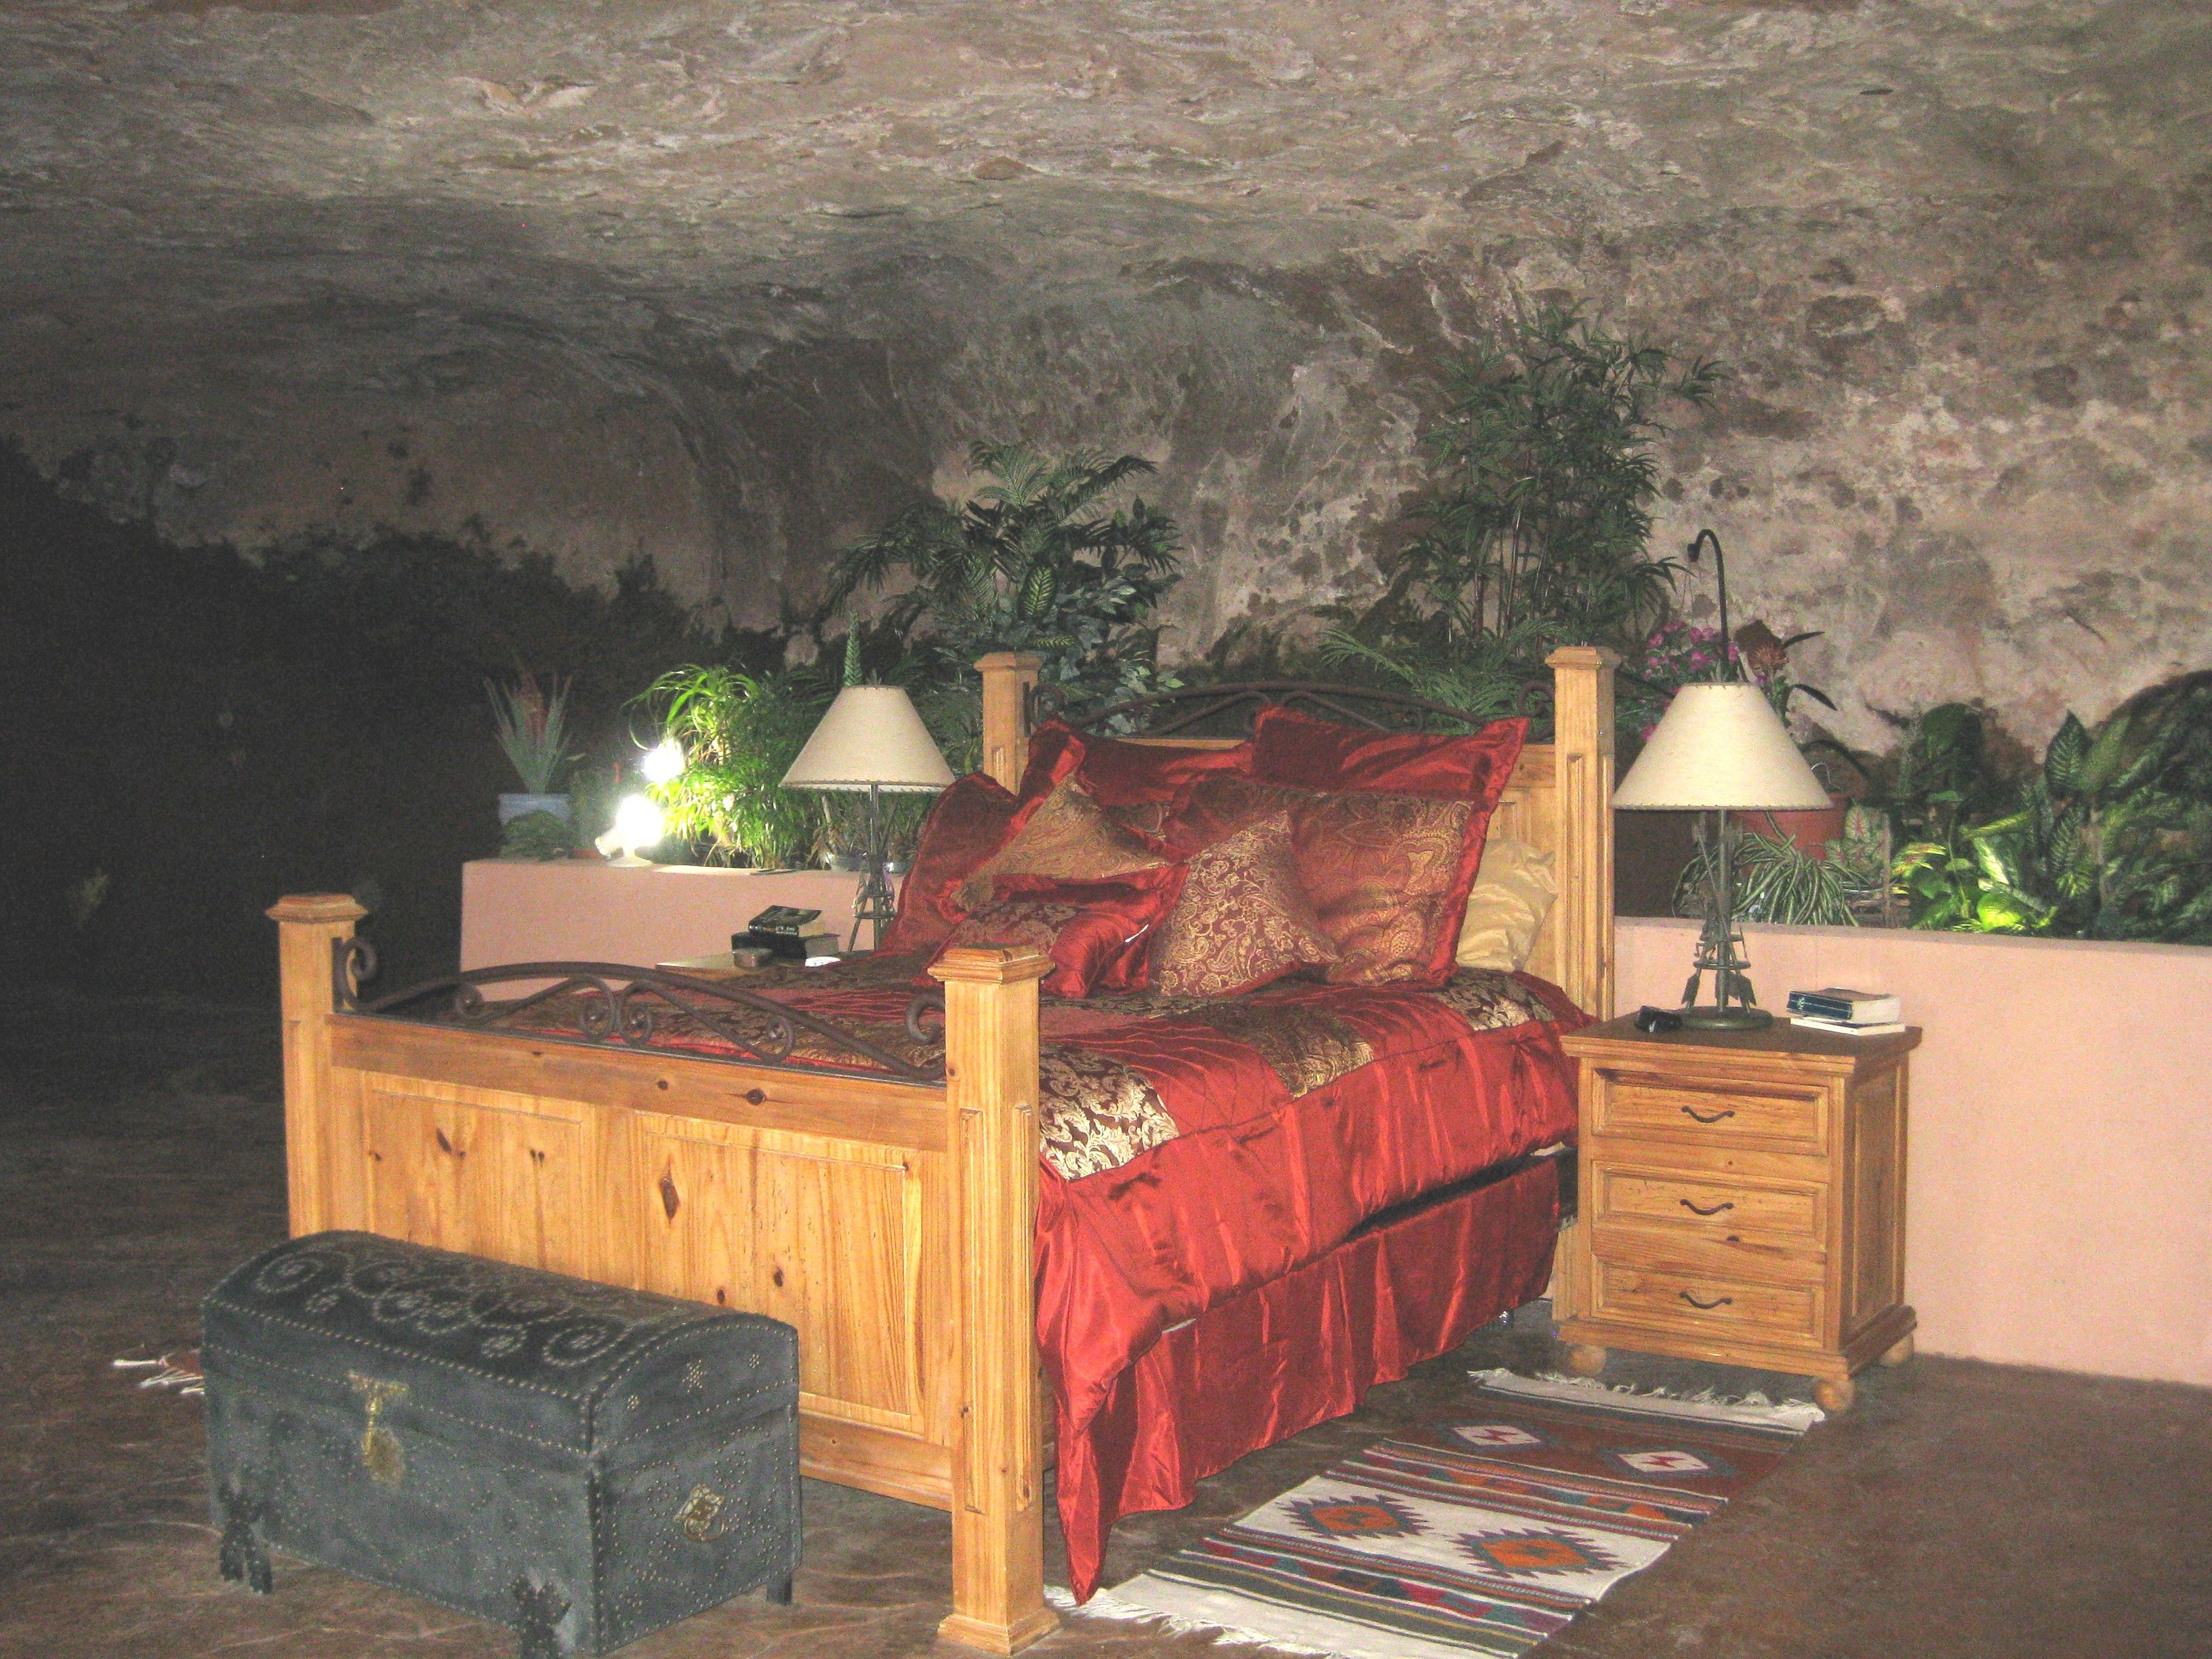 Bedroom in a cave home cave house dwell earth sheltered